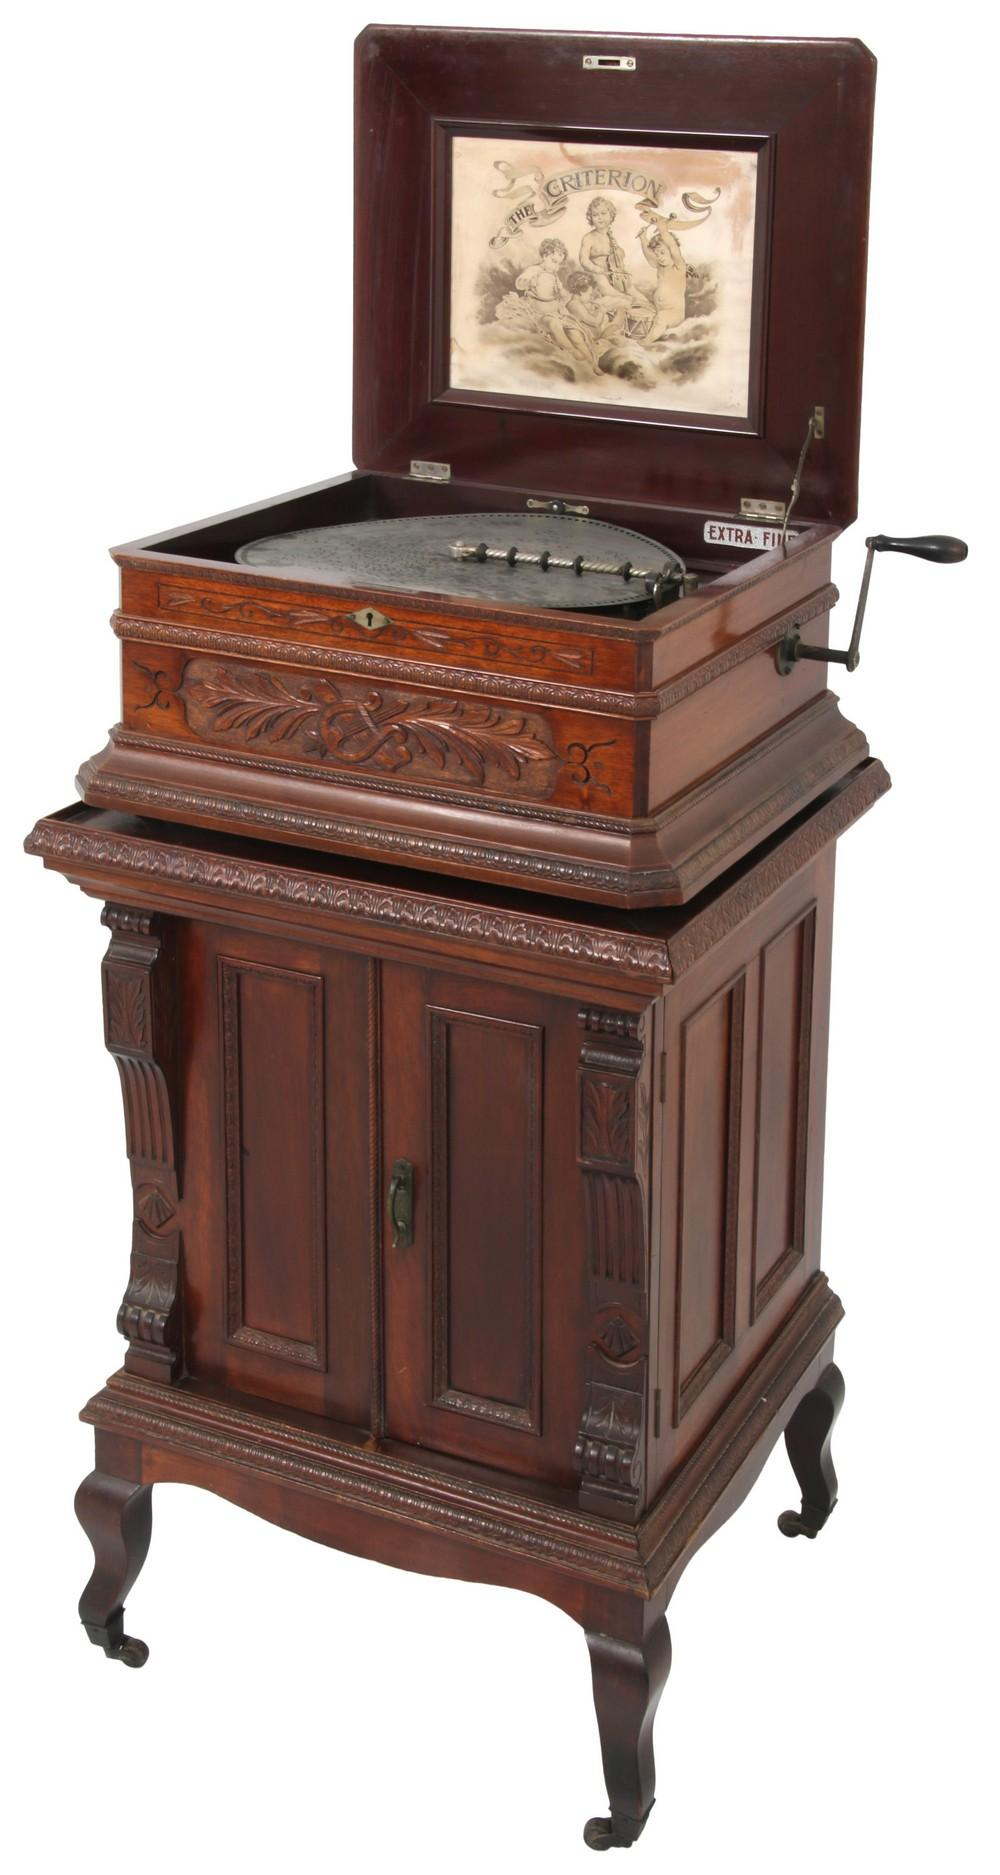 Criterion Mahogany Music Box with Stand